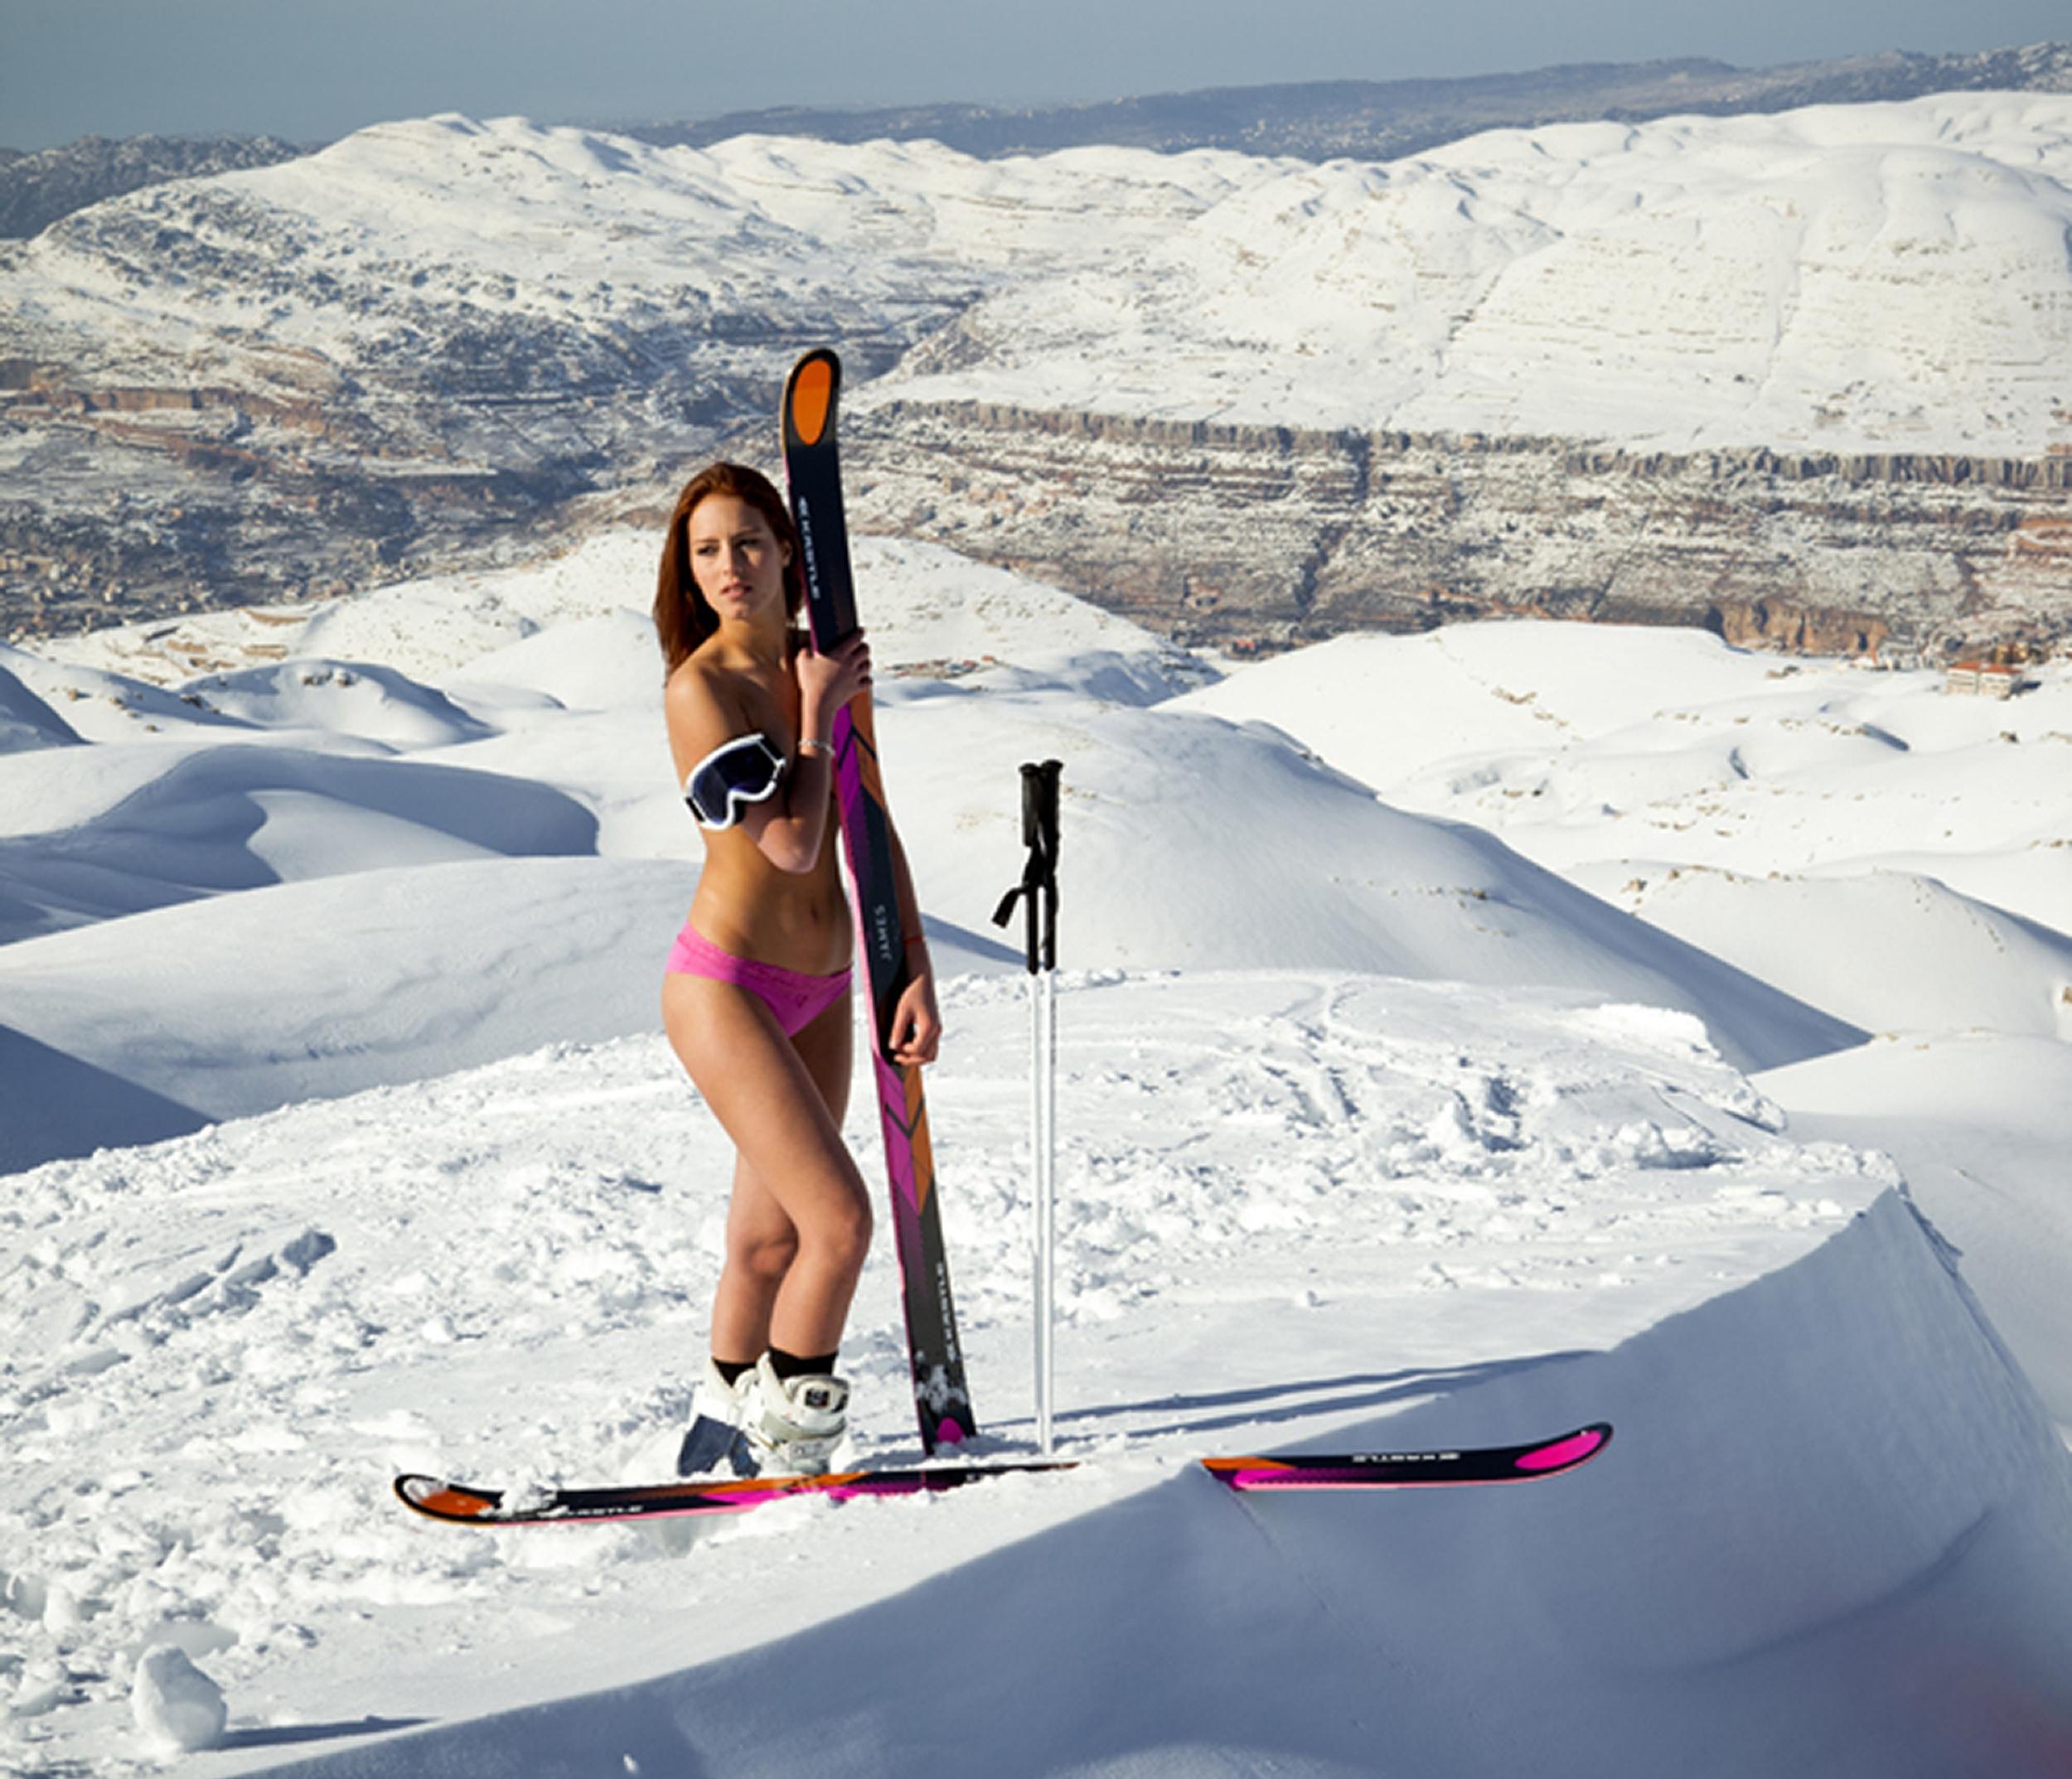 Topless photo of skier apologise, but